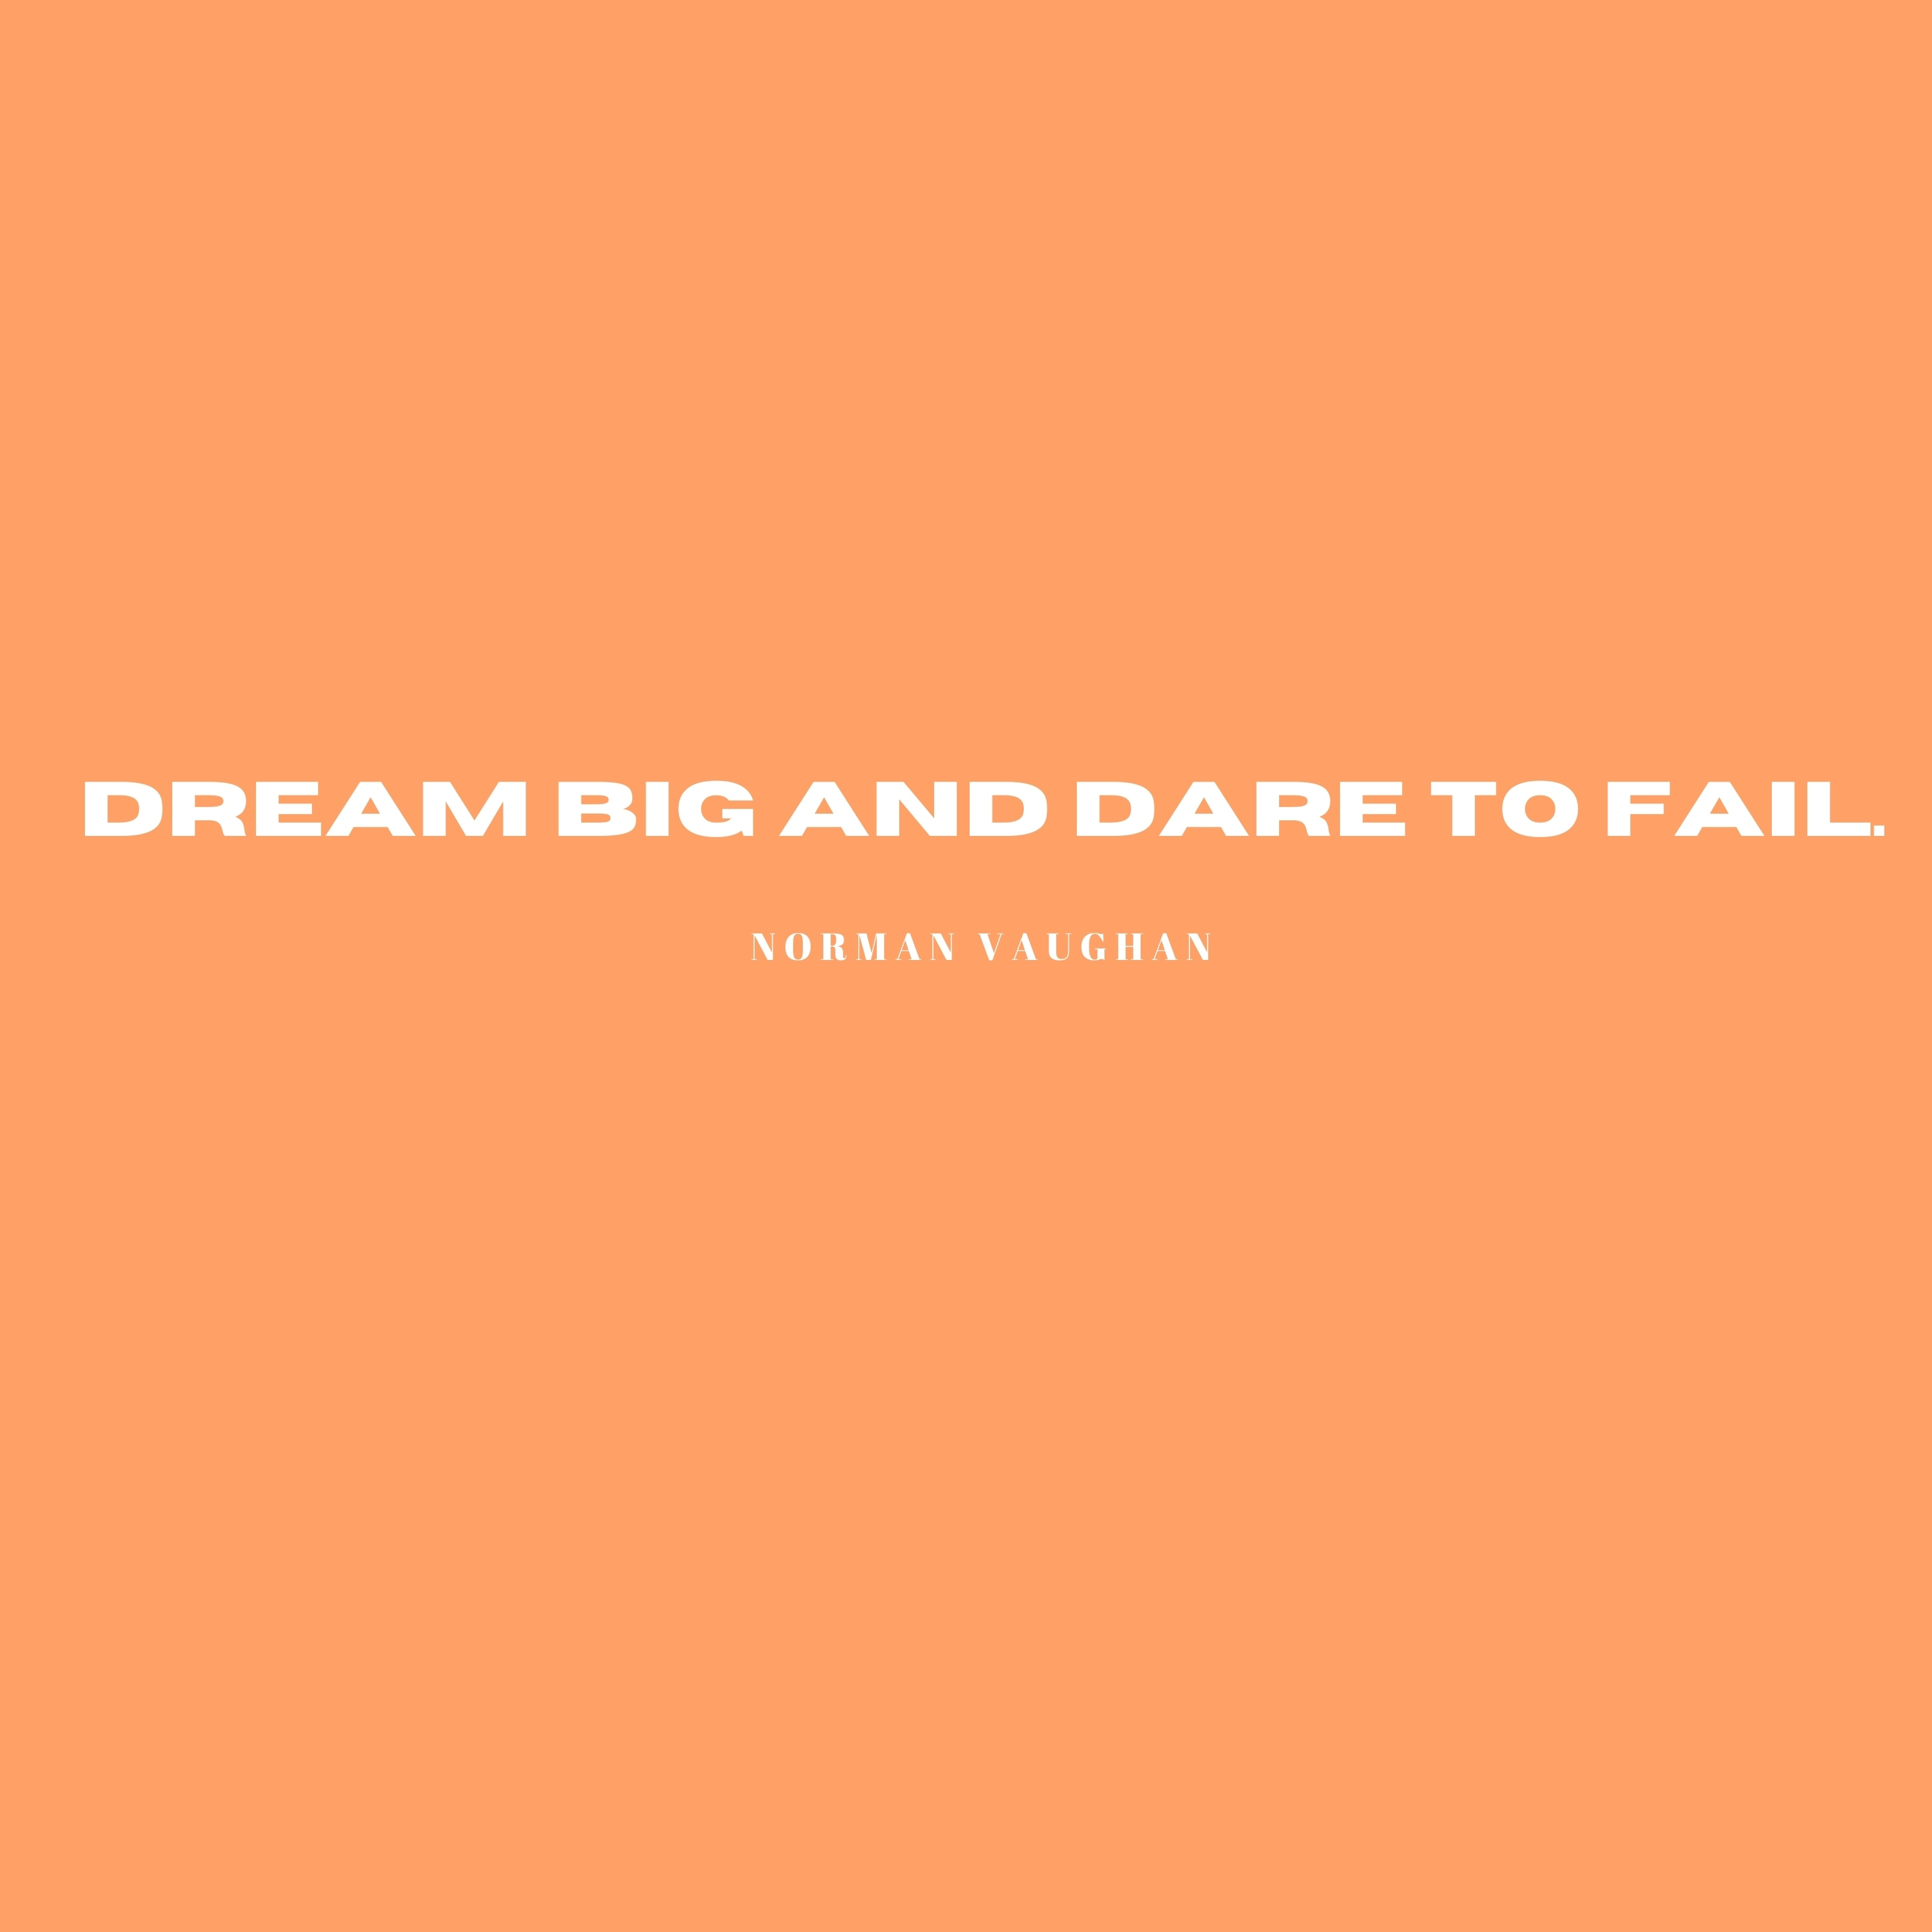 Dream Big Dare to Fail Quote iPad Wallpaper